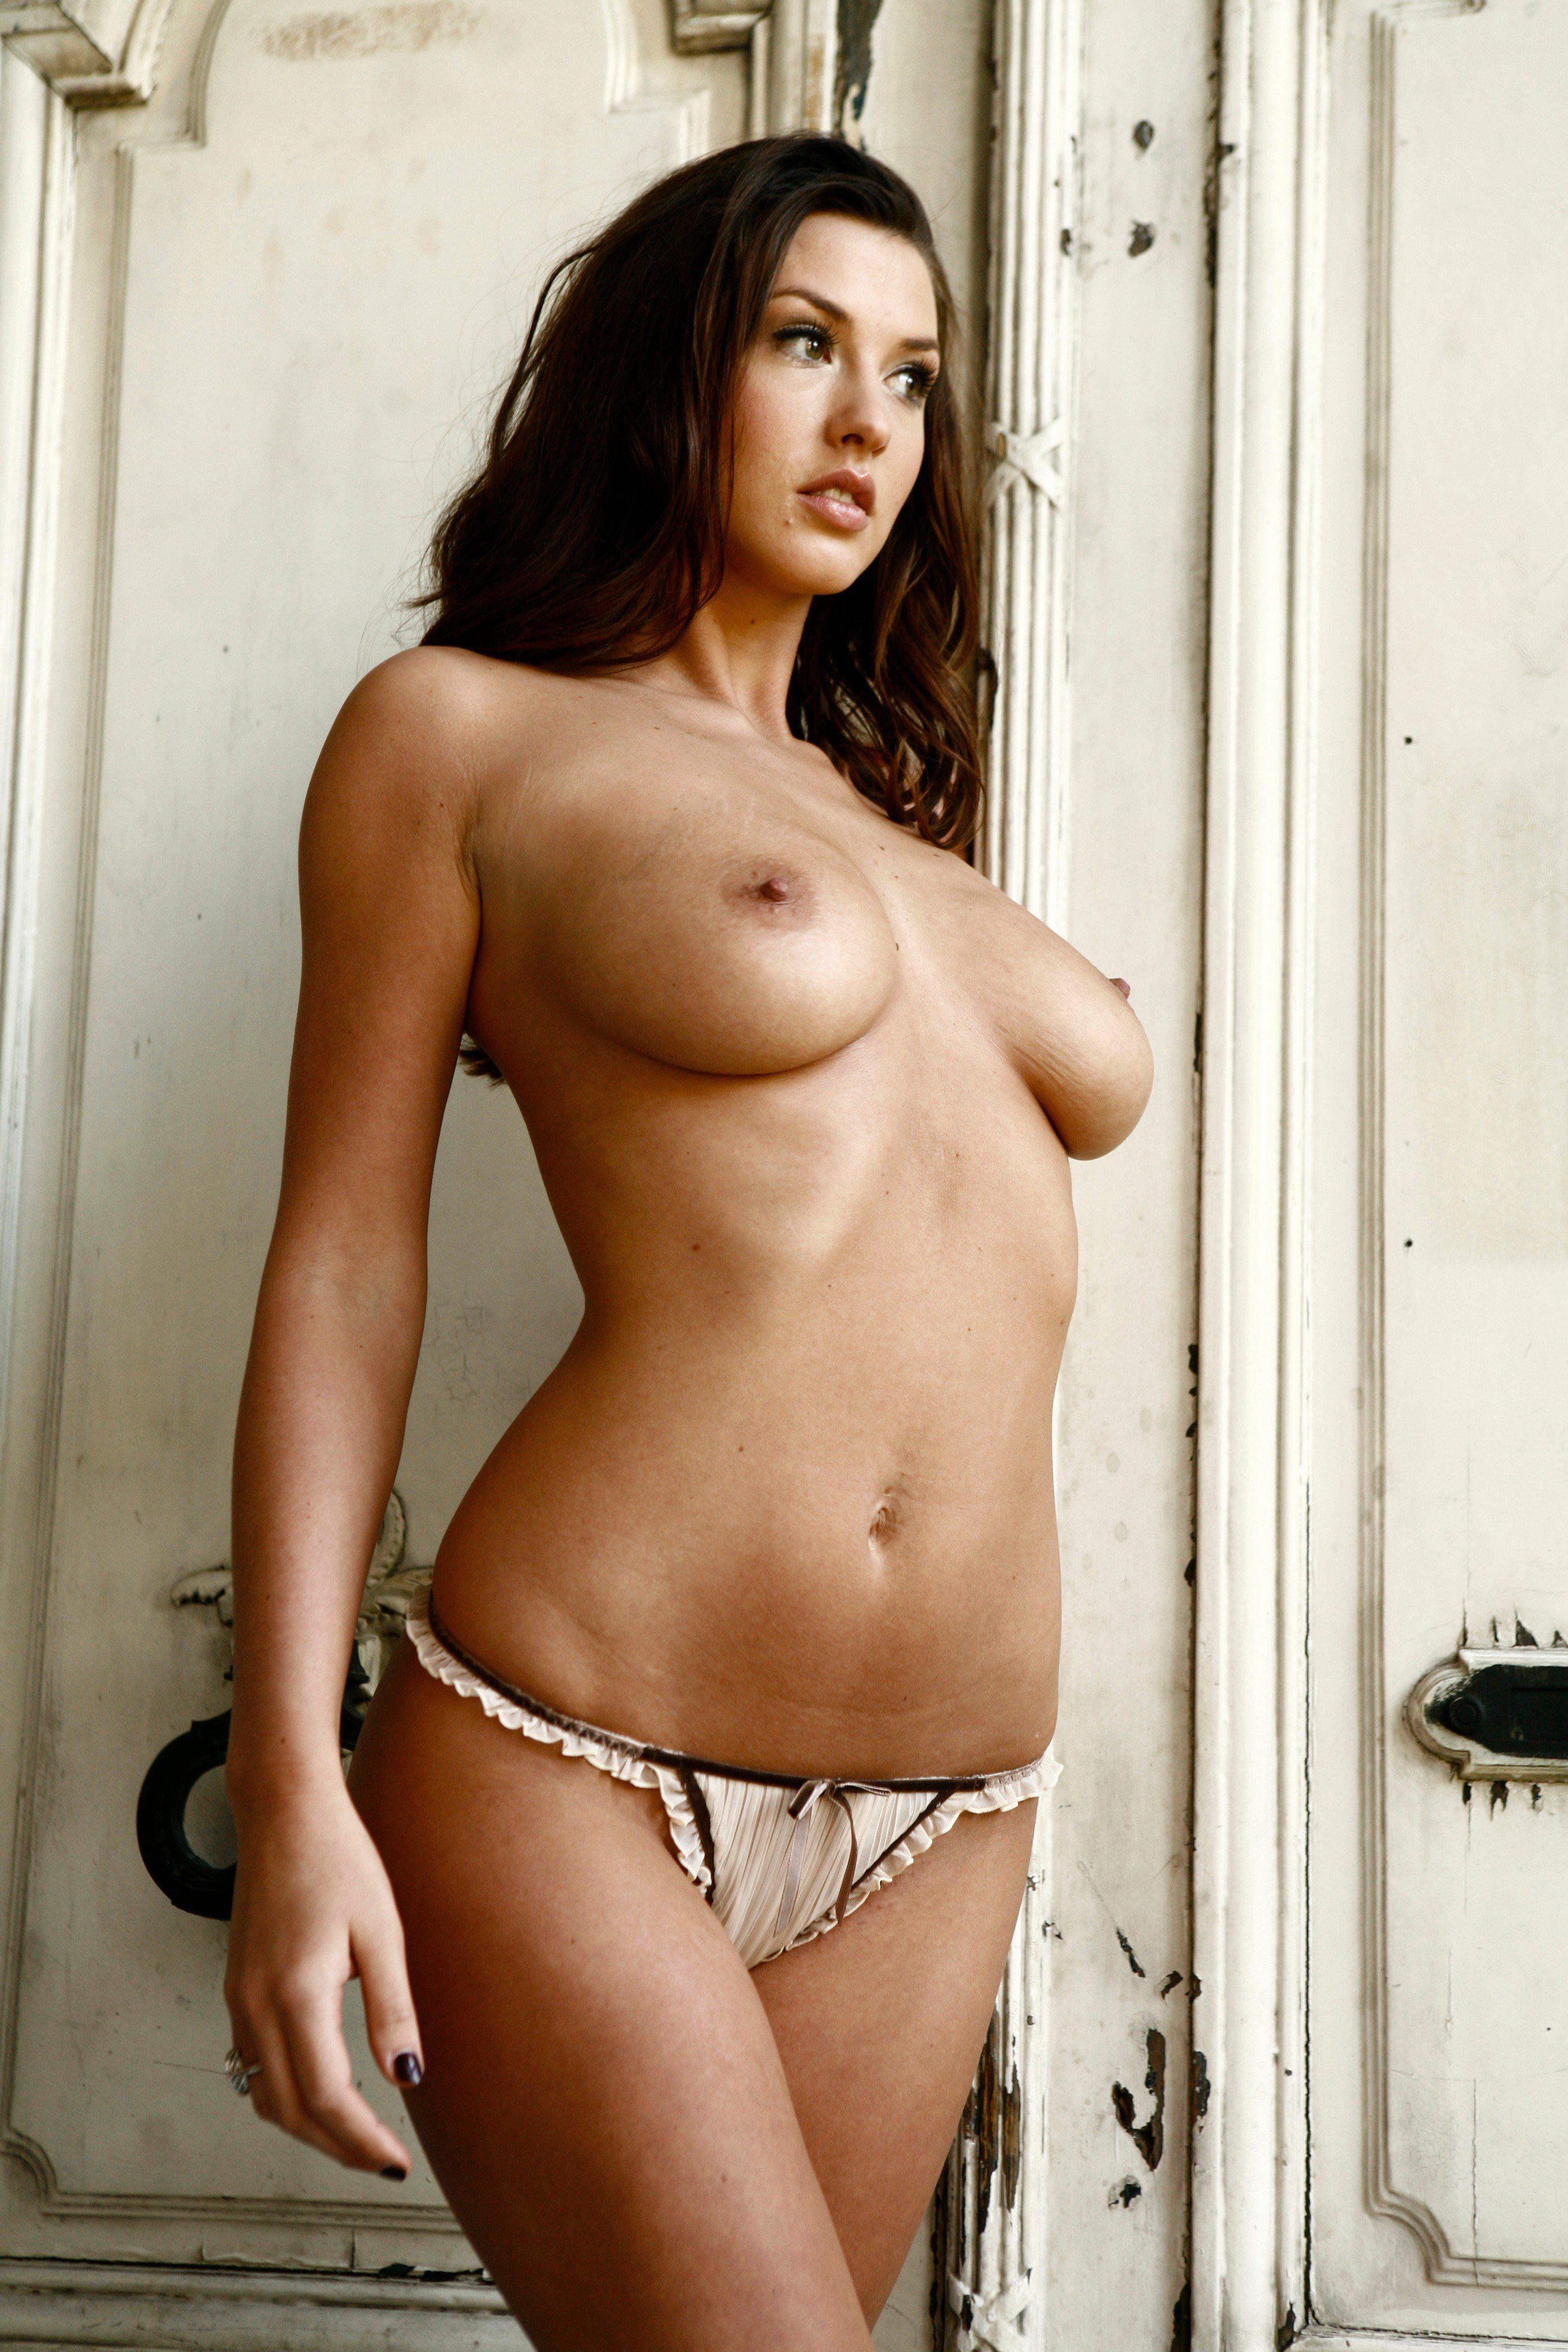 Alice Goodwin Porn Forums alice goodwin - page 3 pictures, naked, oops, topless